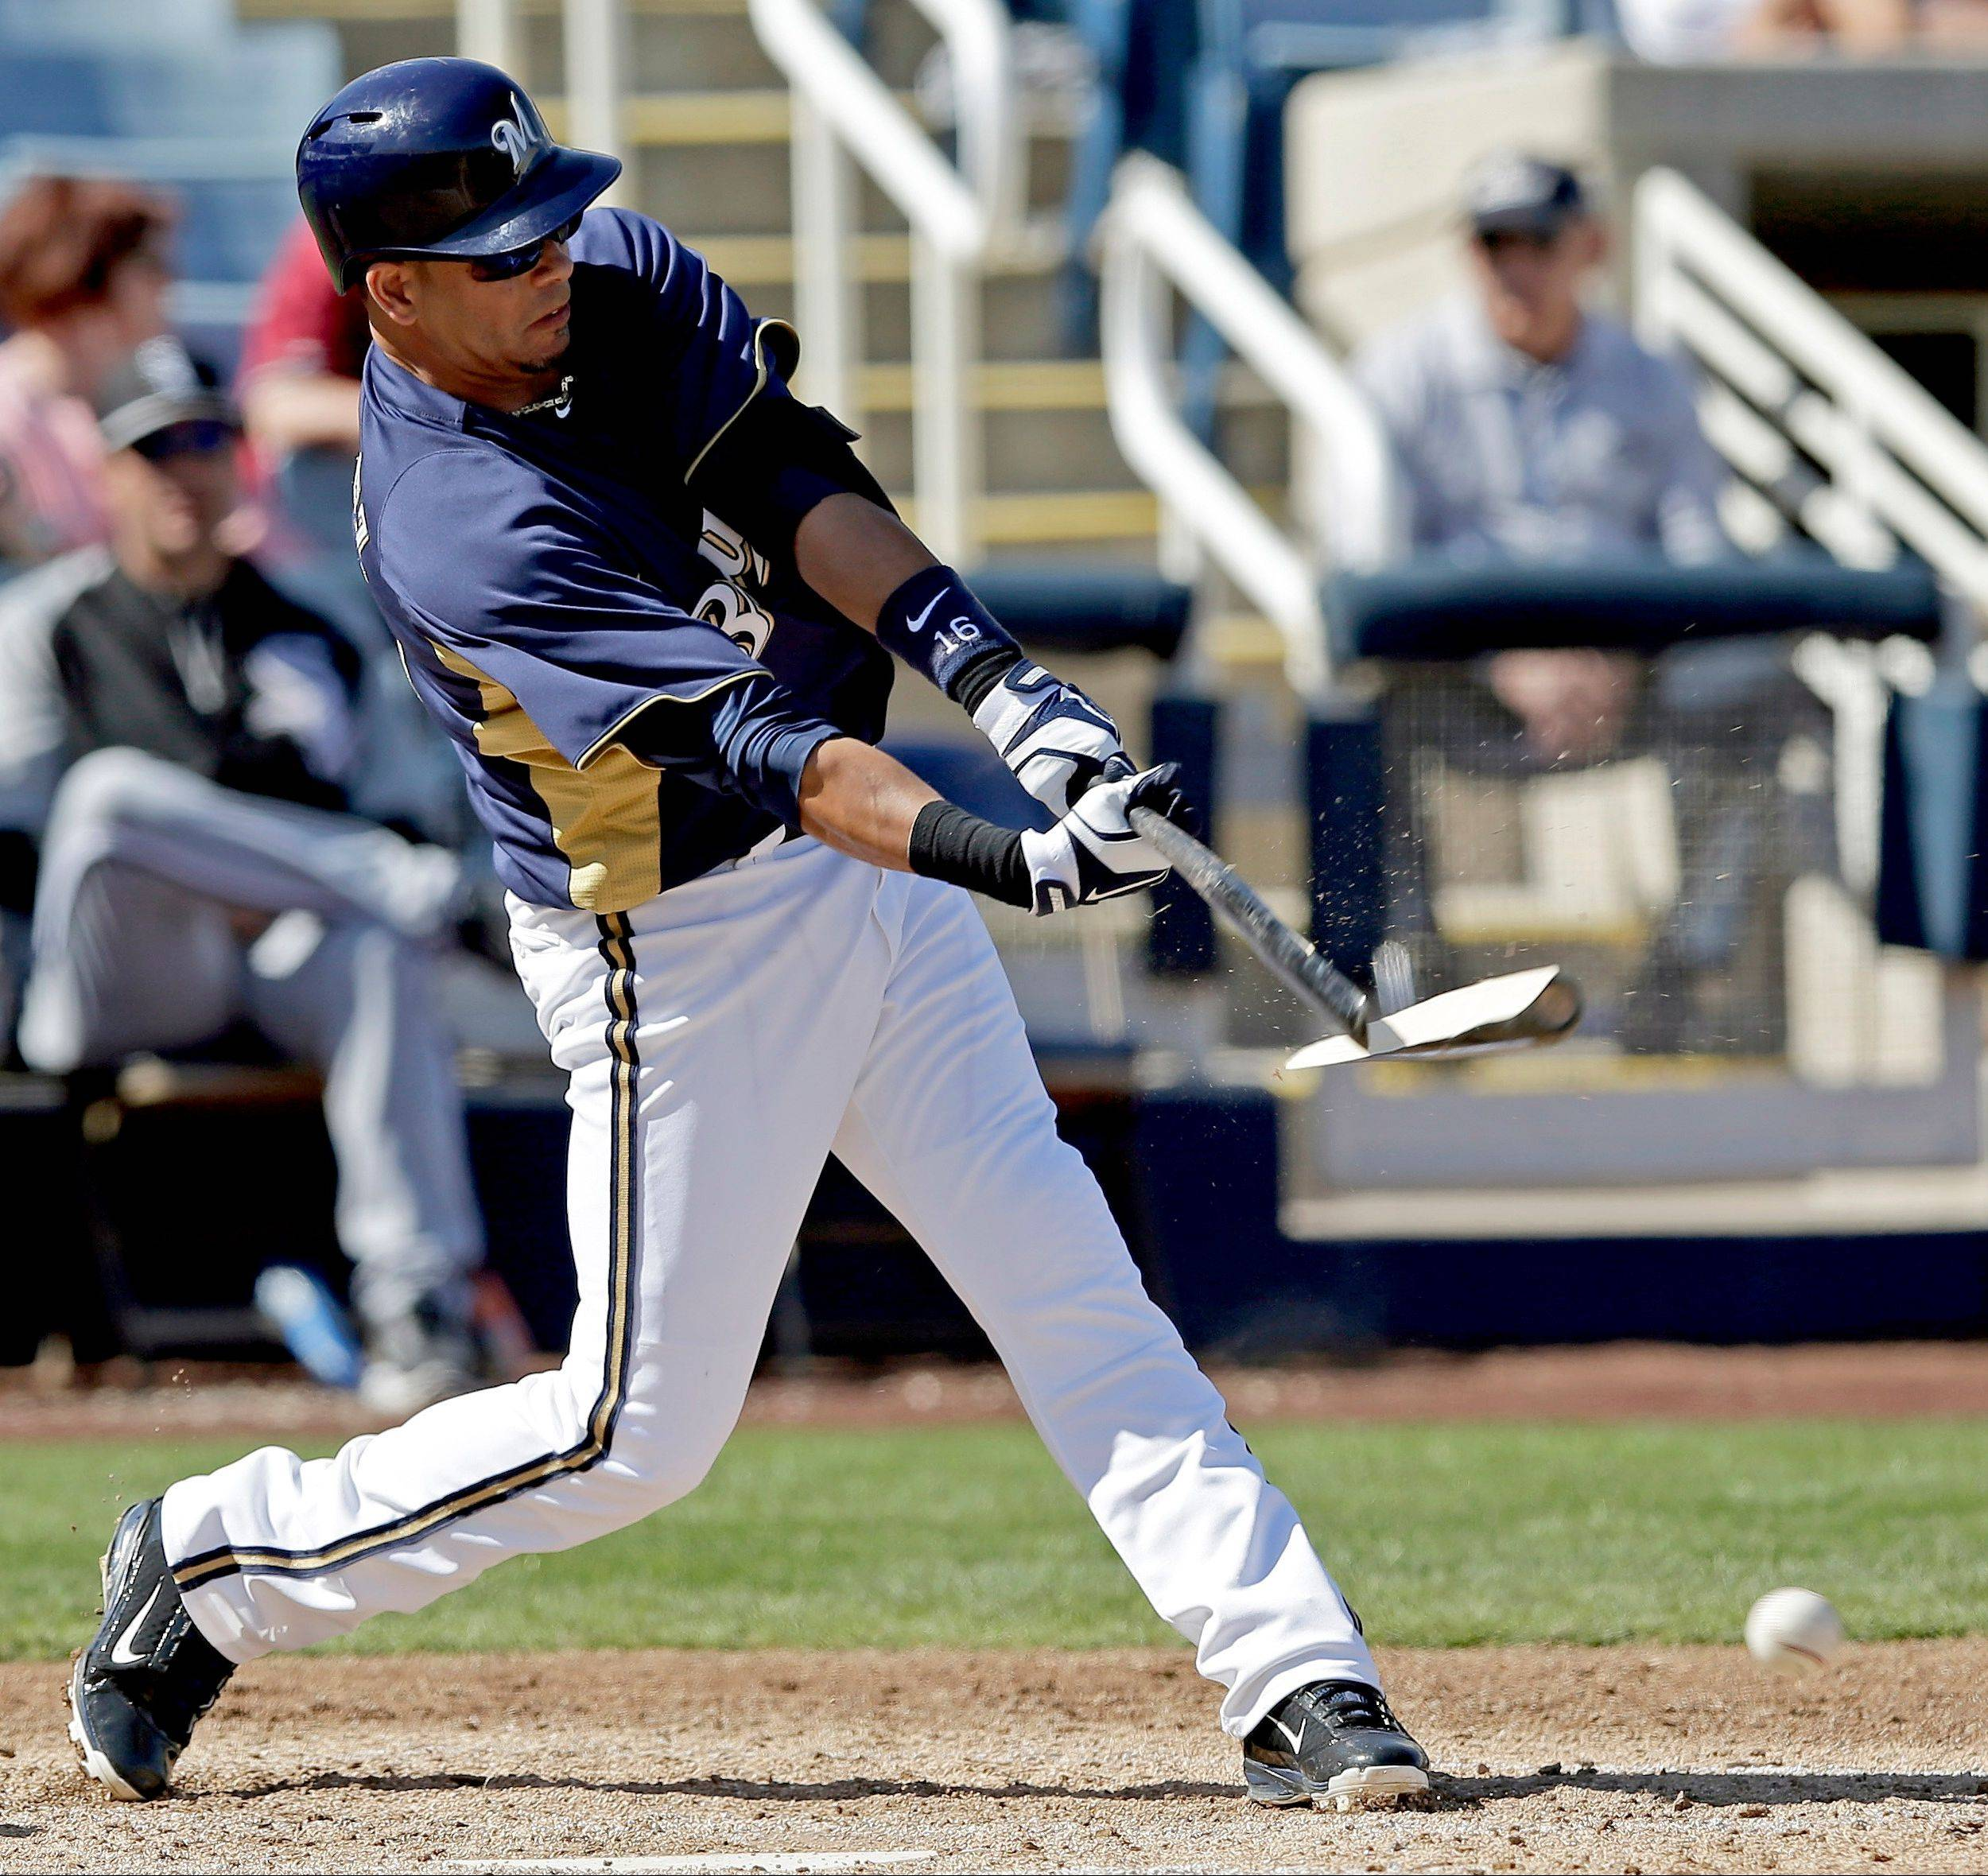 Milwaukee Brewers third baseman and former Cub Aramis Ramirez breaks his bat in an exhibition game last Thursday. Ramirez sprained his left knee Saturday when sliding into second, and the Brewers must be relieved the injury wasn't worse.